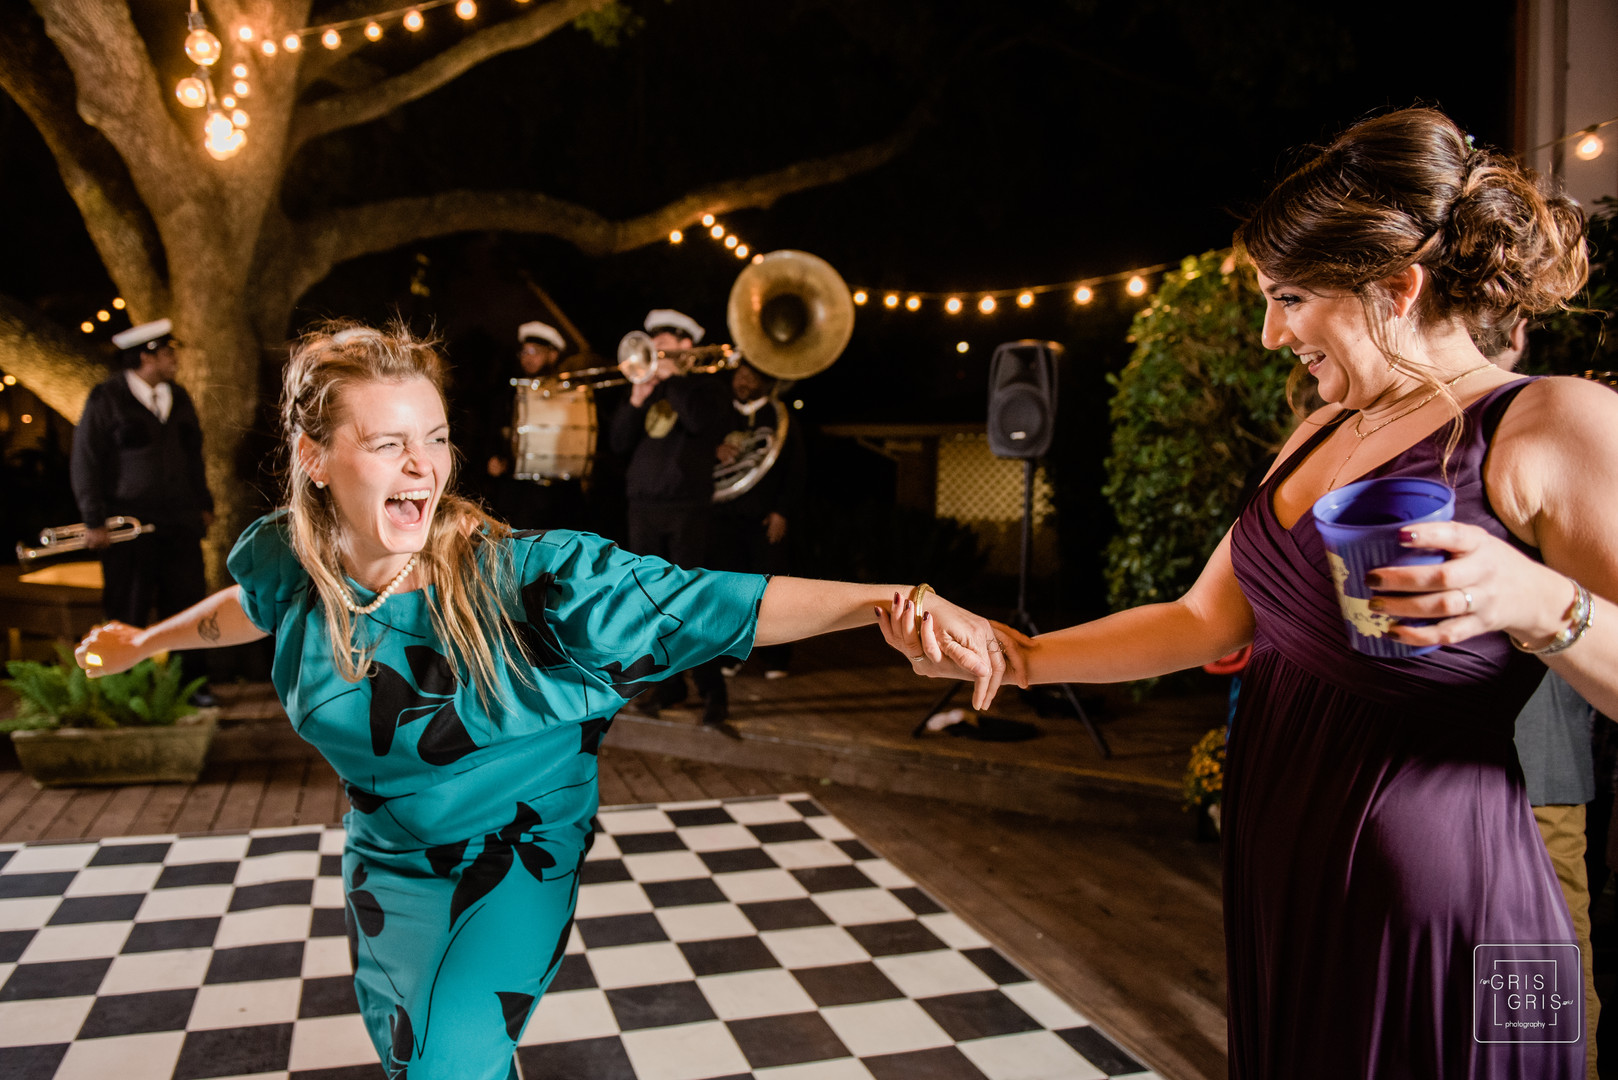 wedding guest dance to jazz music durring reception at compass point events